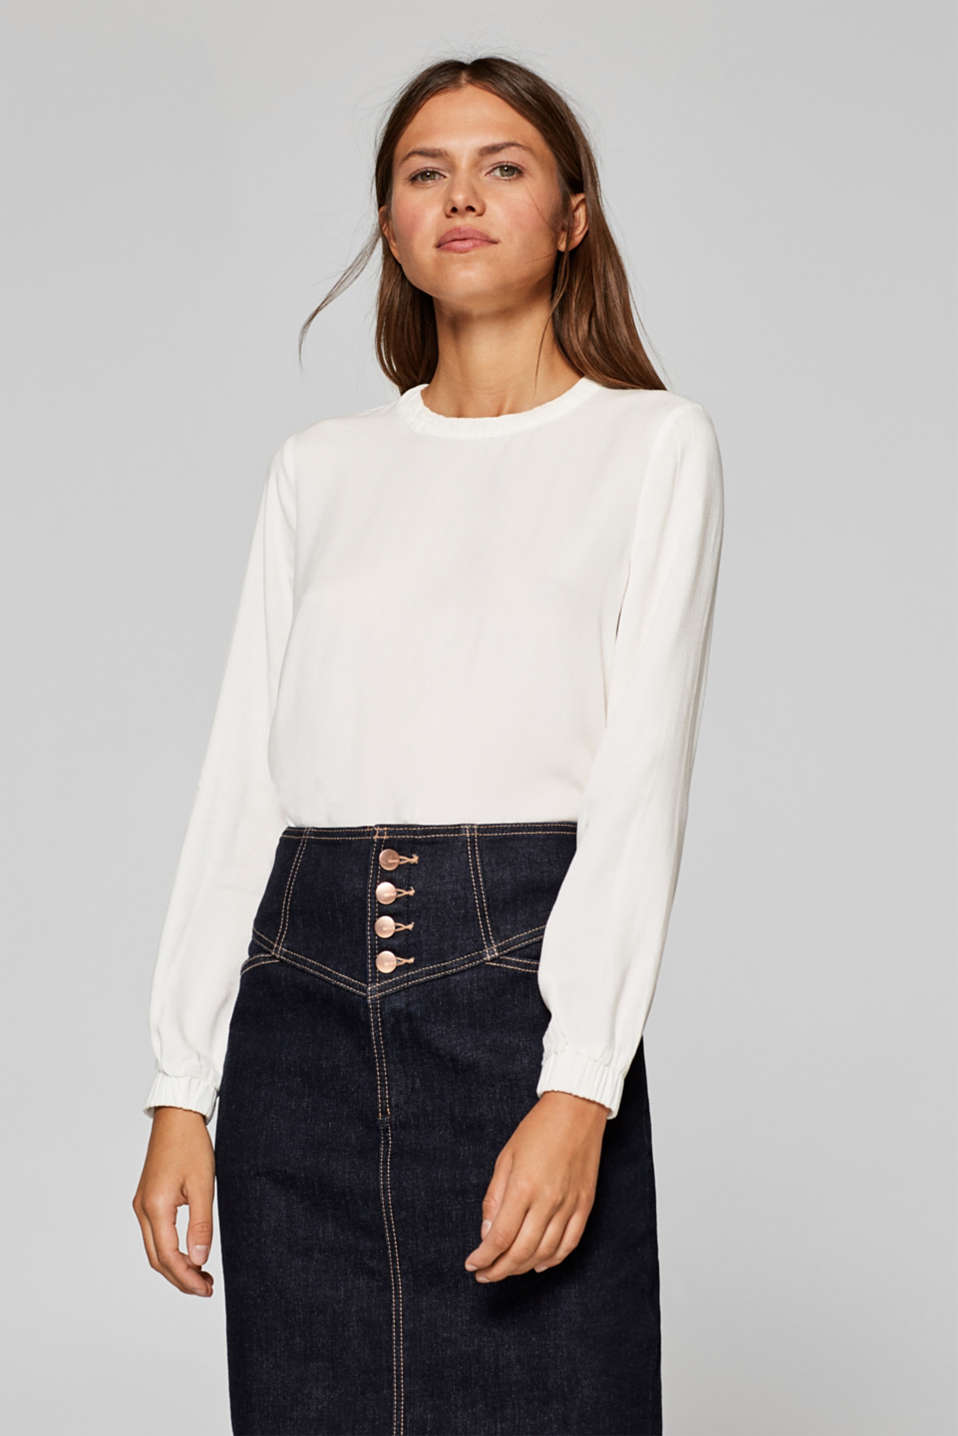 Esprit - Crêpe blouse with a decorative trim